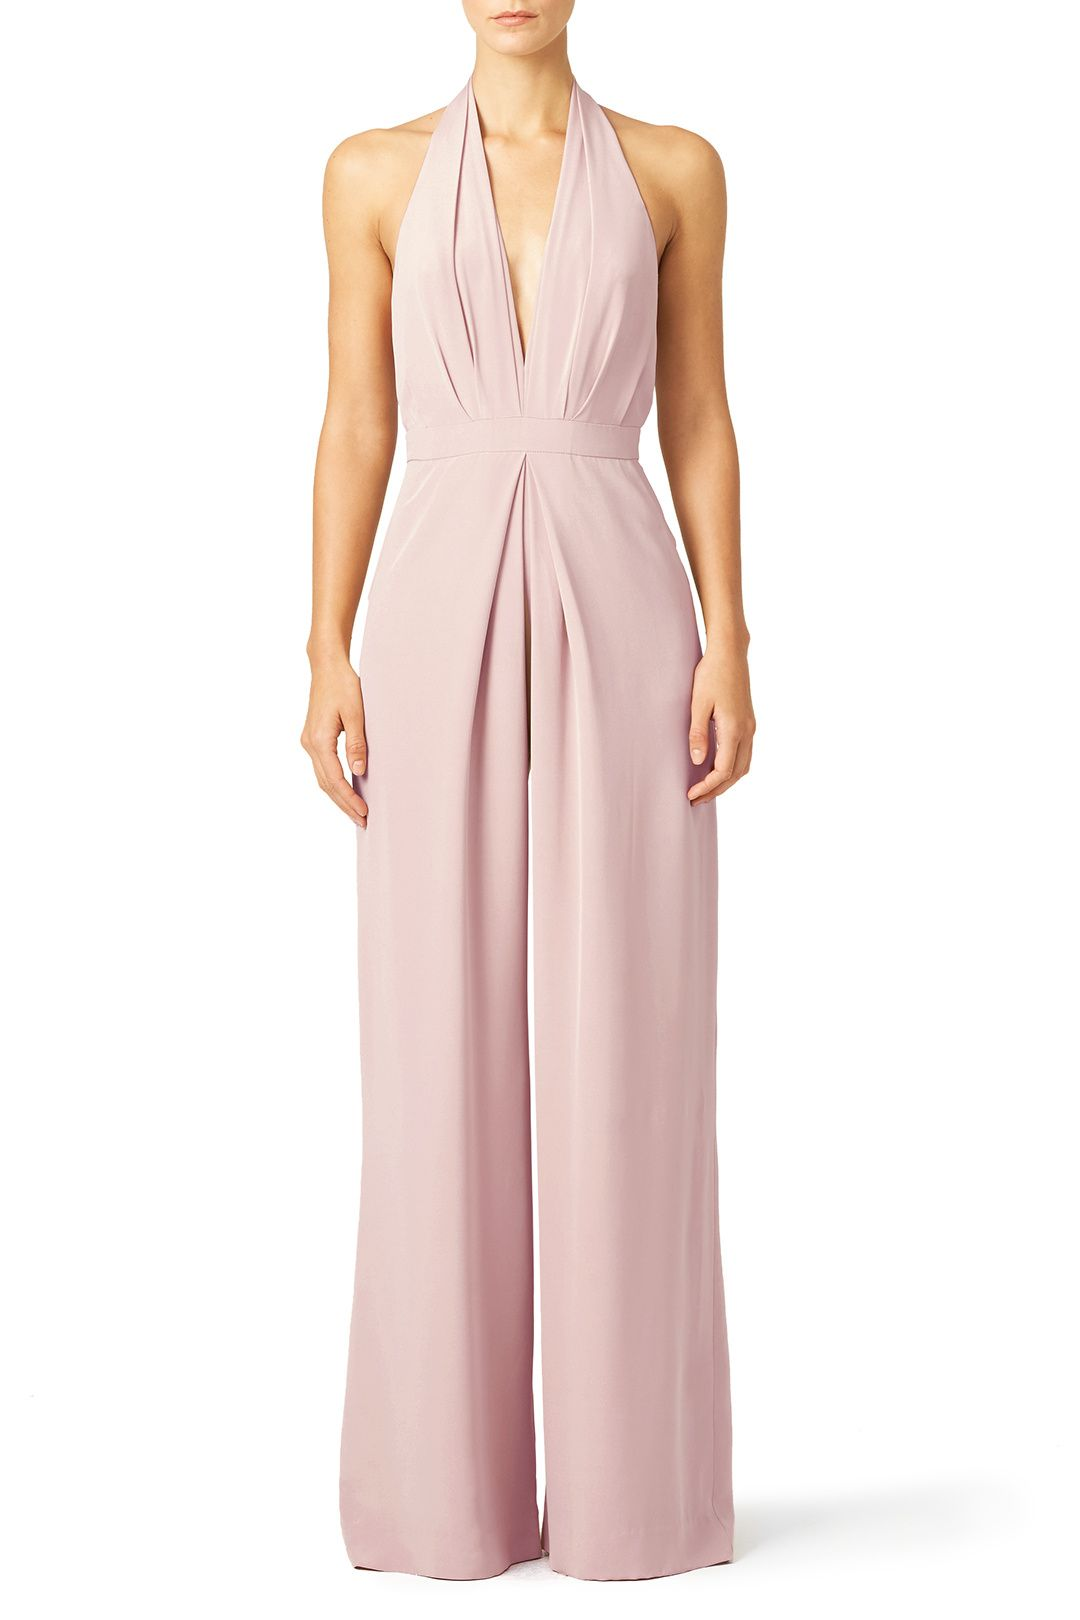 abb9977f0d Crisp pleating and a plunging neckline make this Jill Jill Stuart jumpsuit  both tailored and alluring. We love this look for brides.